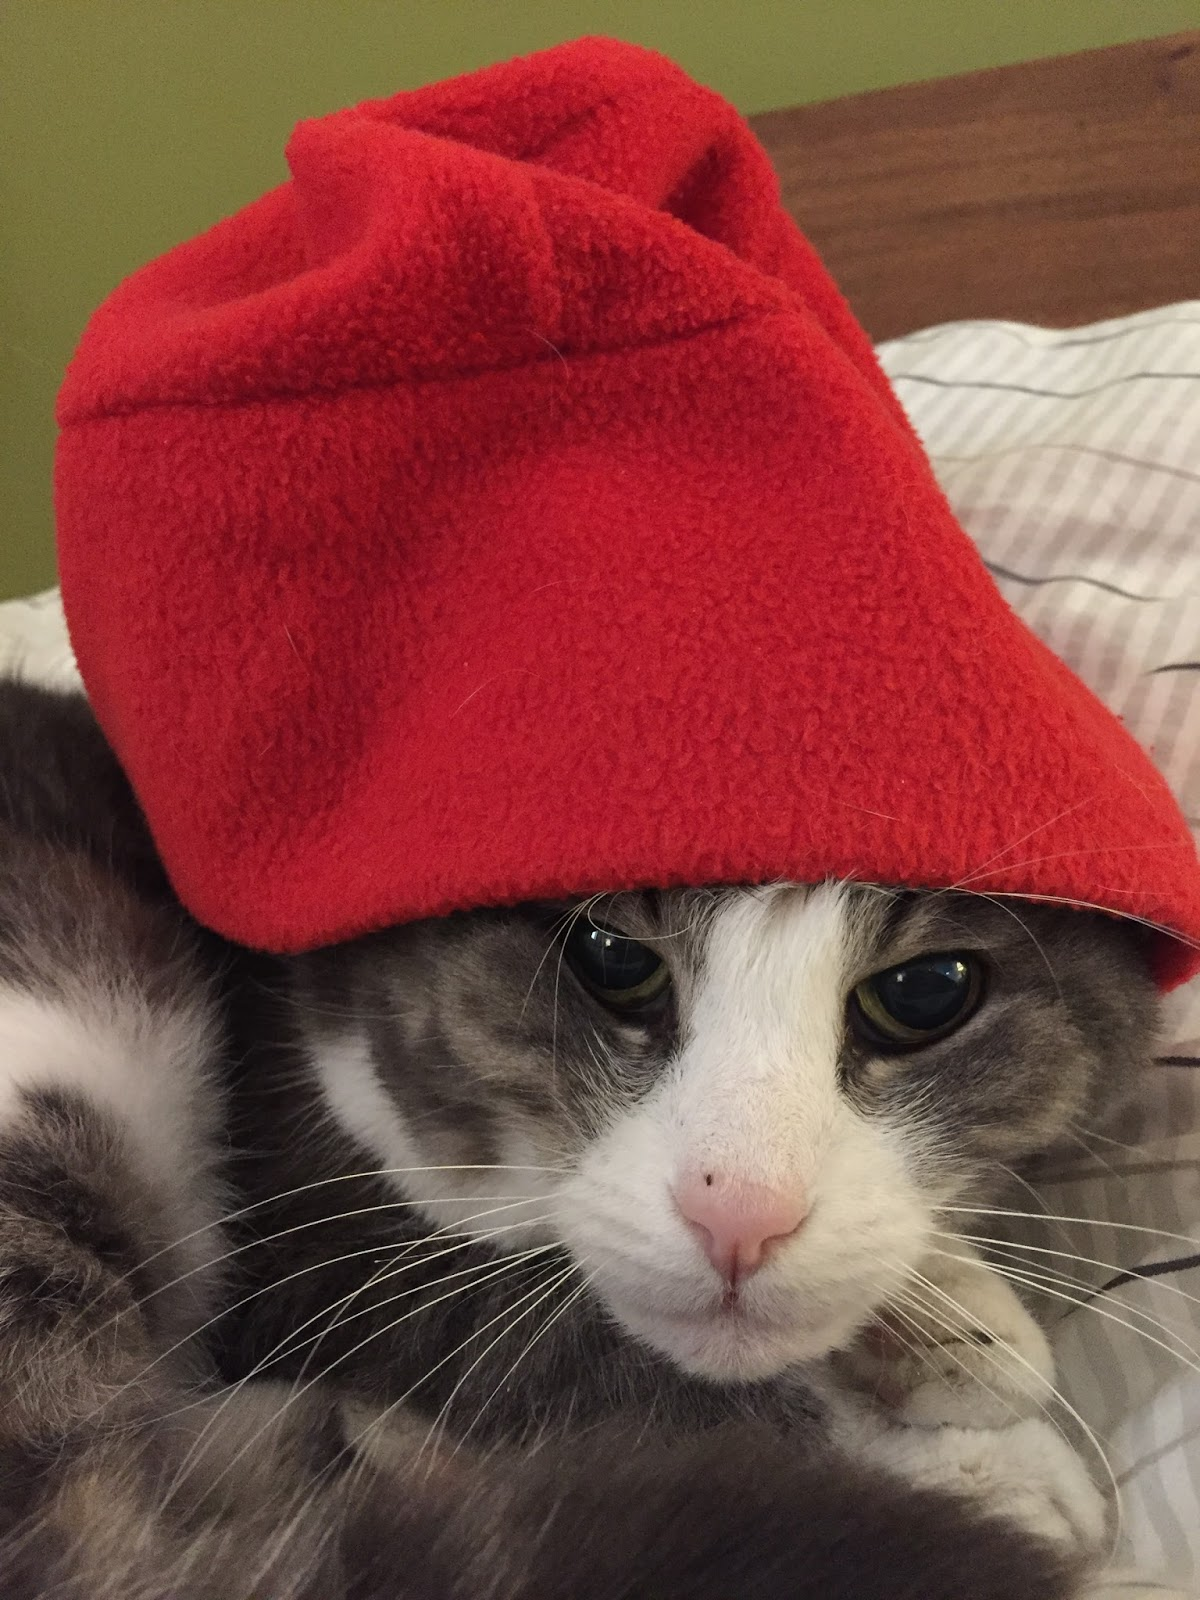 The Cat And The Hat Illustrator